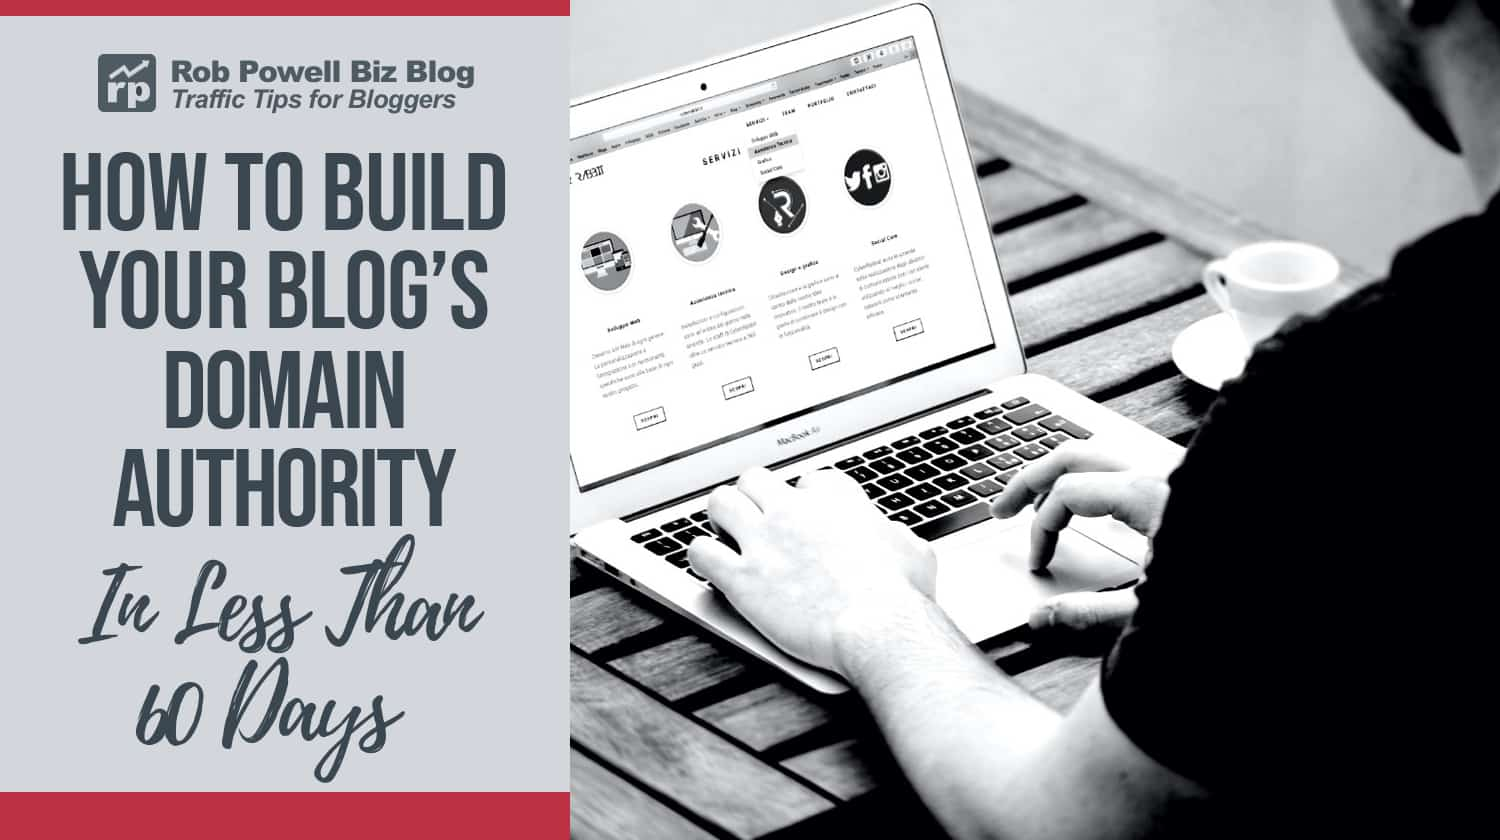 build your blog's domain authority